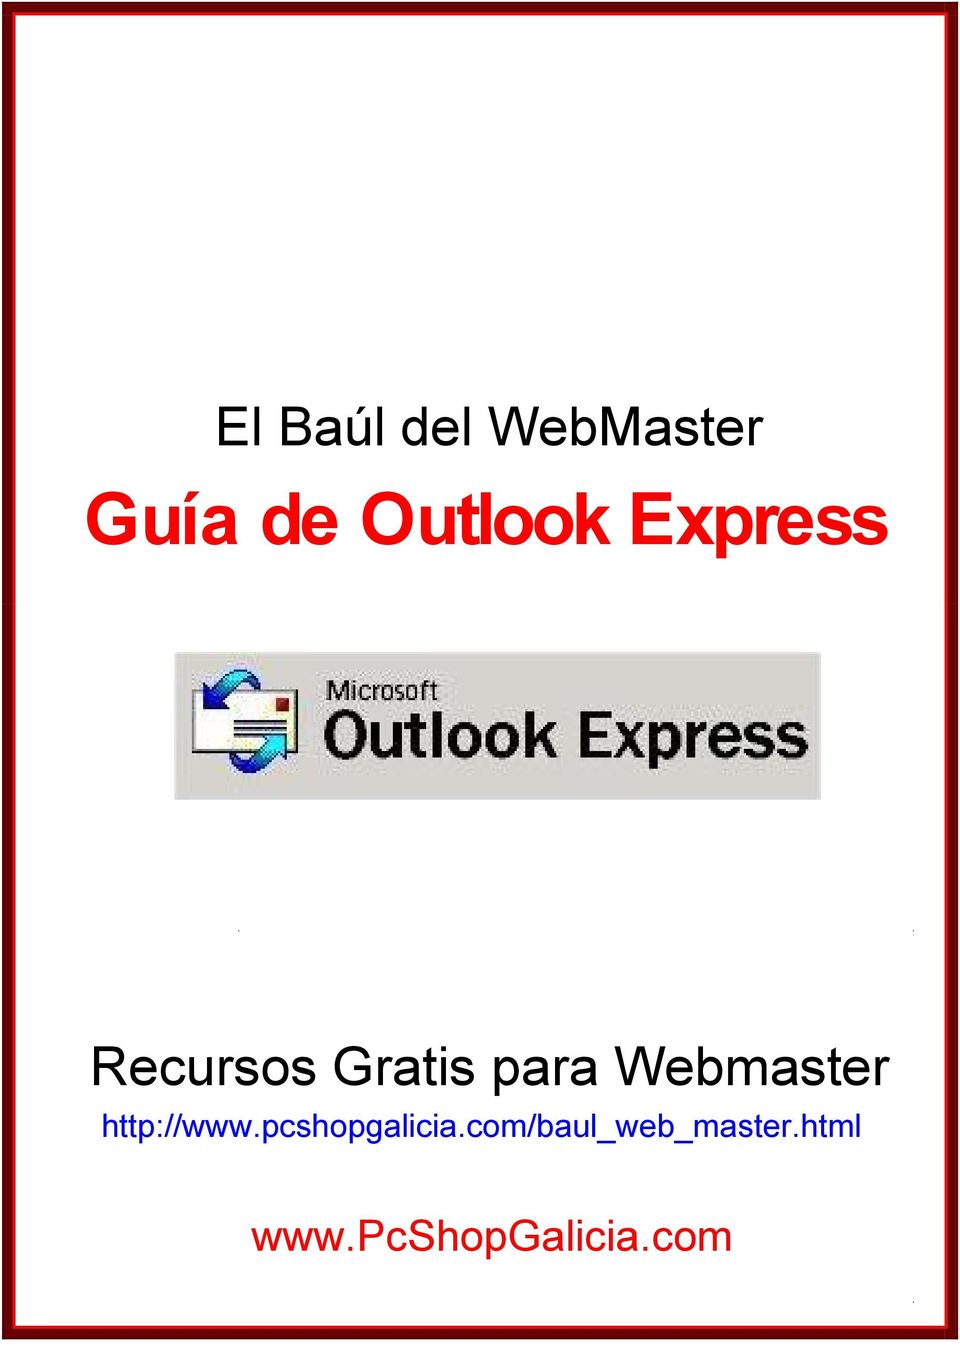 Webmaster http://www.pcshopgalicia.